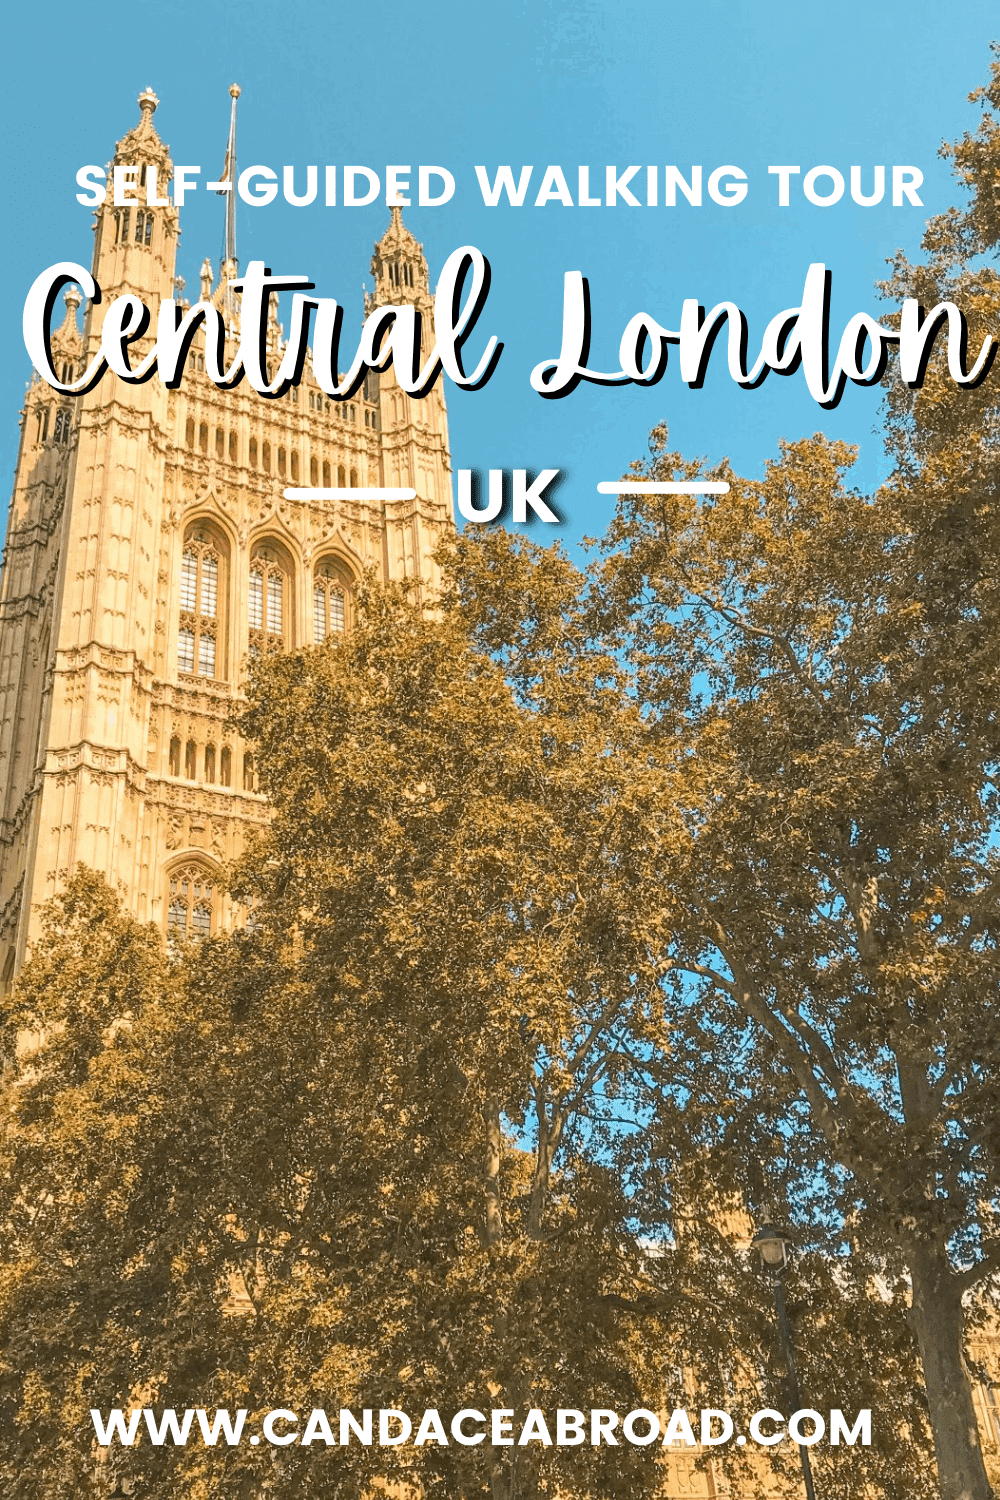 Self-Guided Walking Tour Central London